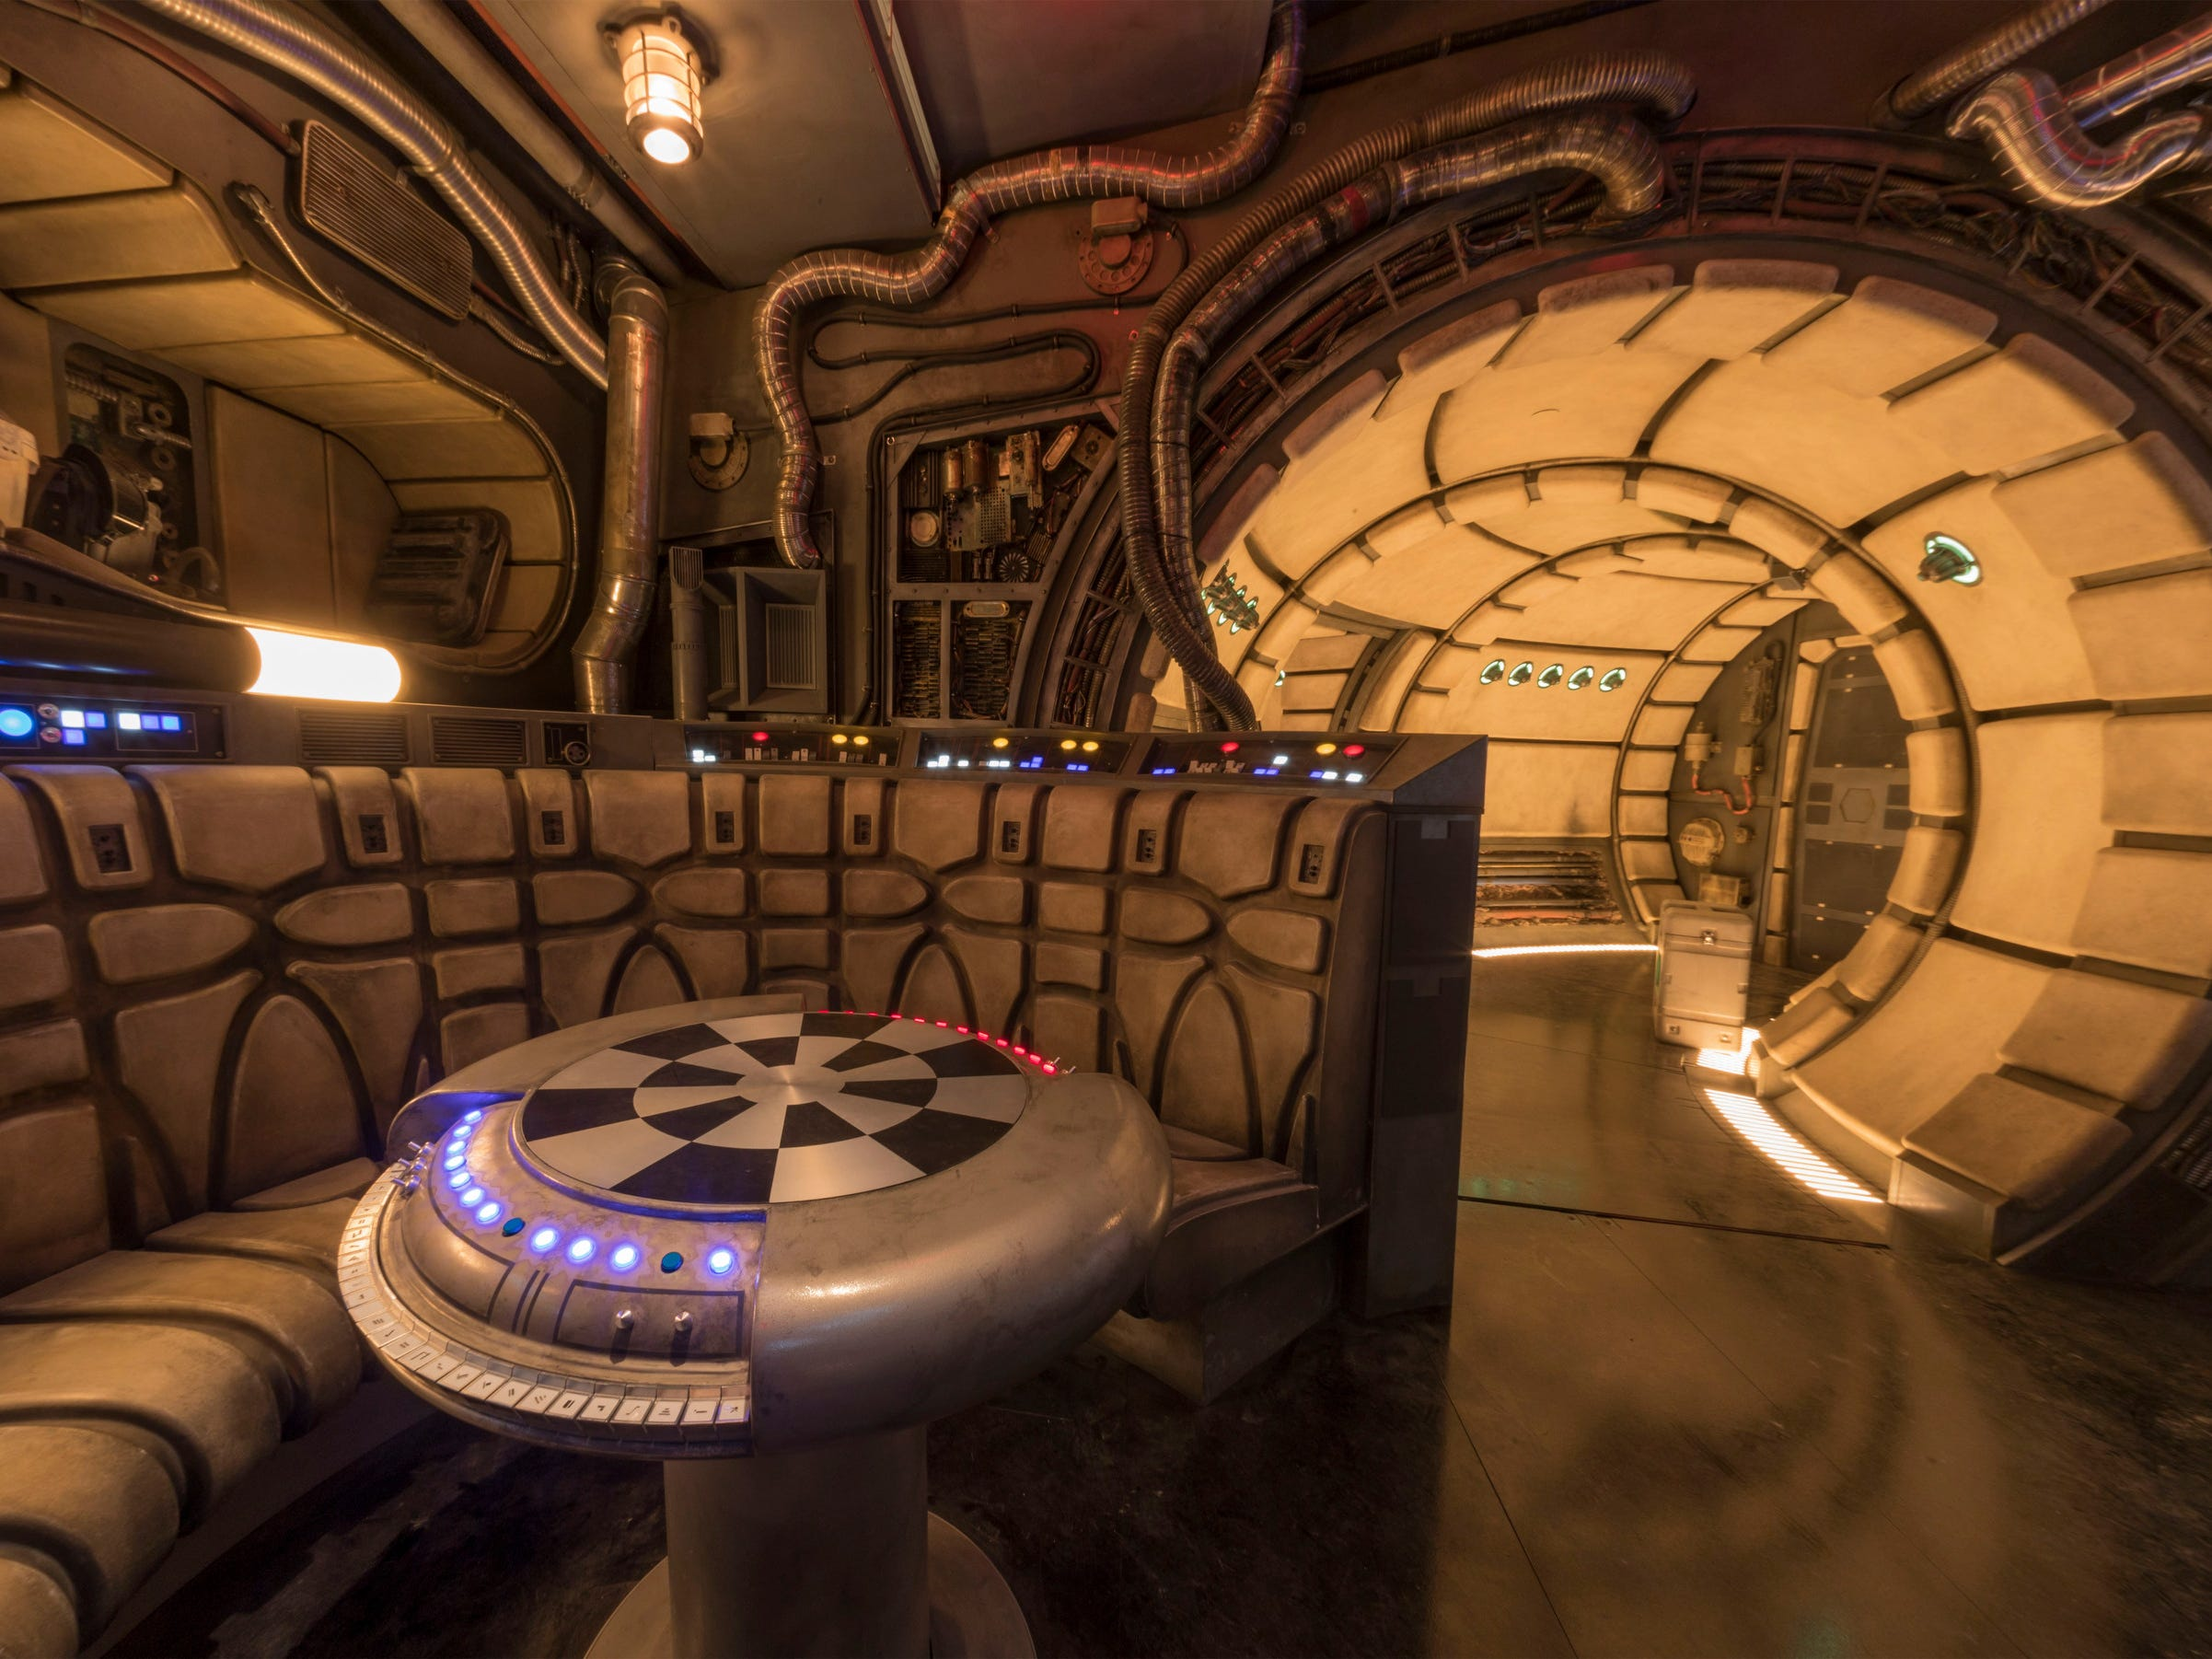 "The famous ""chess room"" is one of several areas Disney guests will discover inside Millennium Falcon: Smugglers Run at Star Wars: Galaxy's Edge before taking the controls in one of three unique and critical roles aboard the fastest ship in the galaxy."